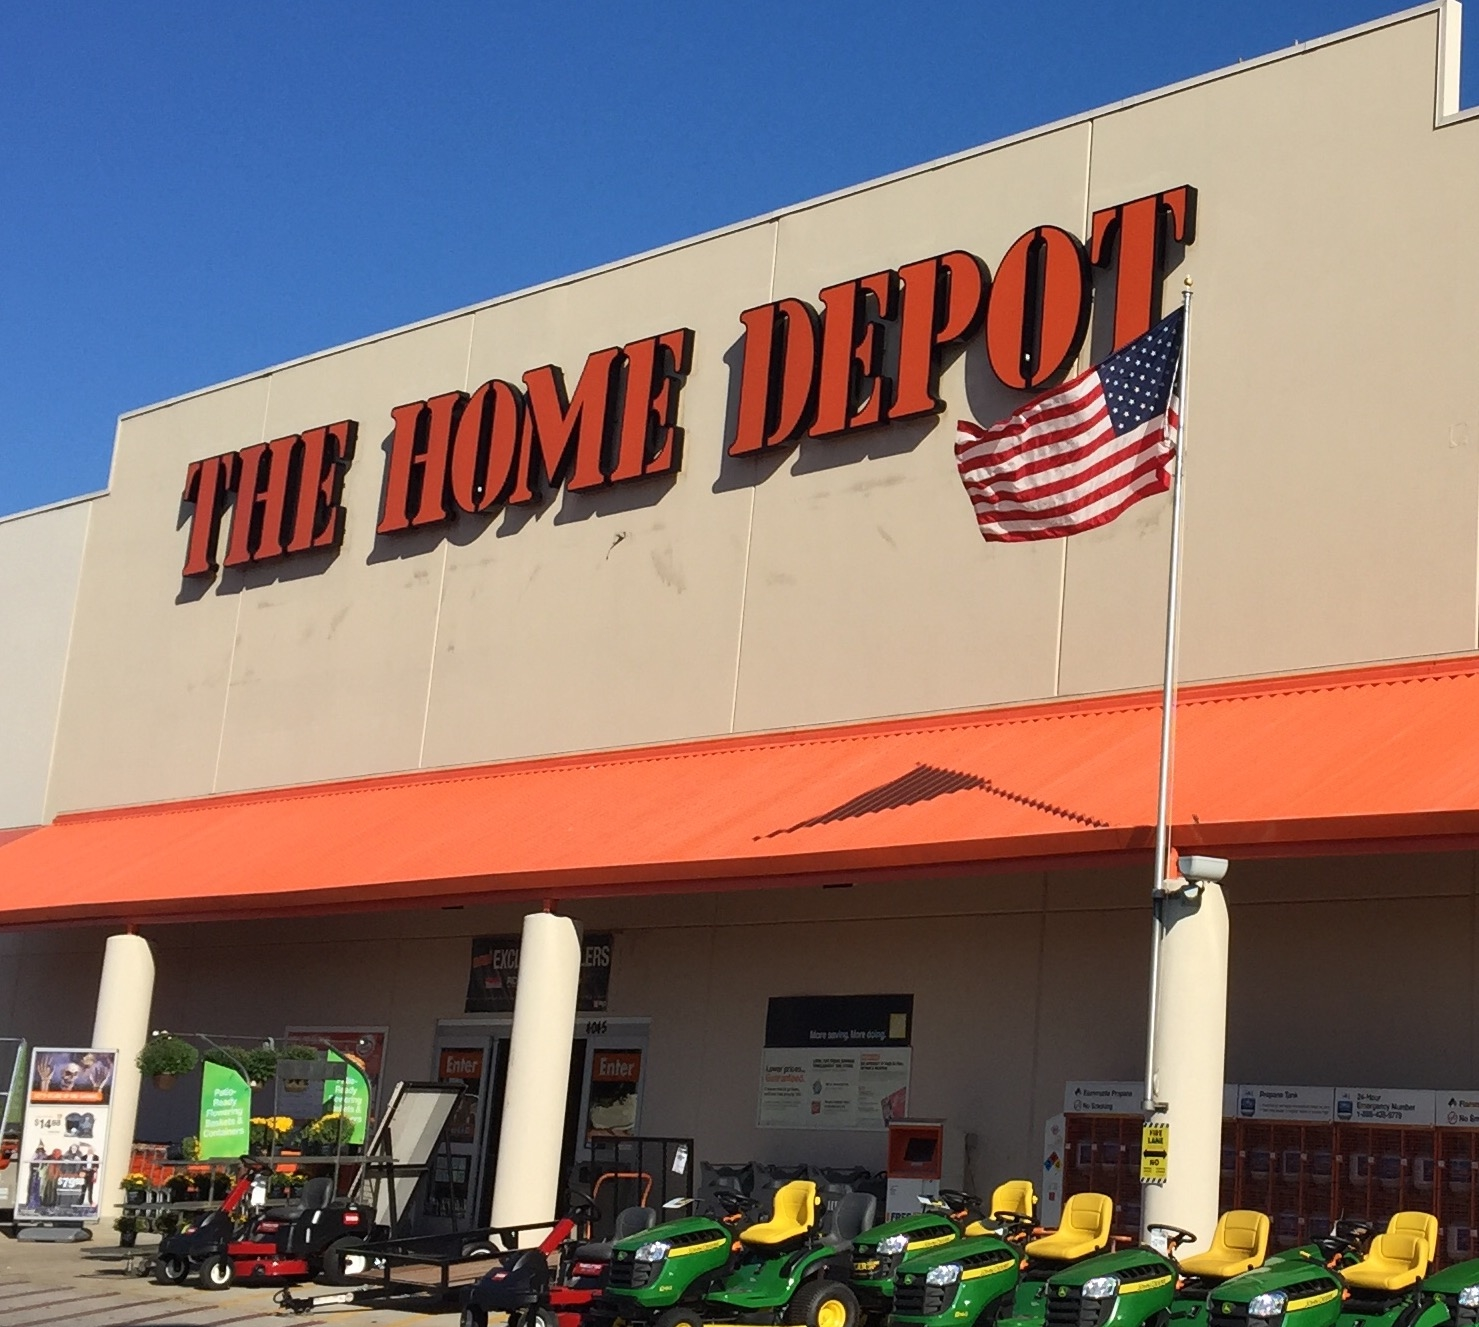 Home Services Details. The Home Services team at The Home Depot Madison # can help with all your installation services and repair needs. Our store's address is Gallatin Pike N, Madison, TN, and our phone number is () Our hand-selected professionals are local, experienced, licensed, and insured.